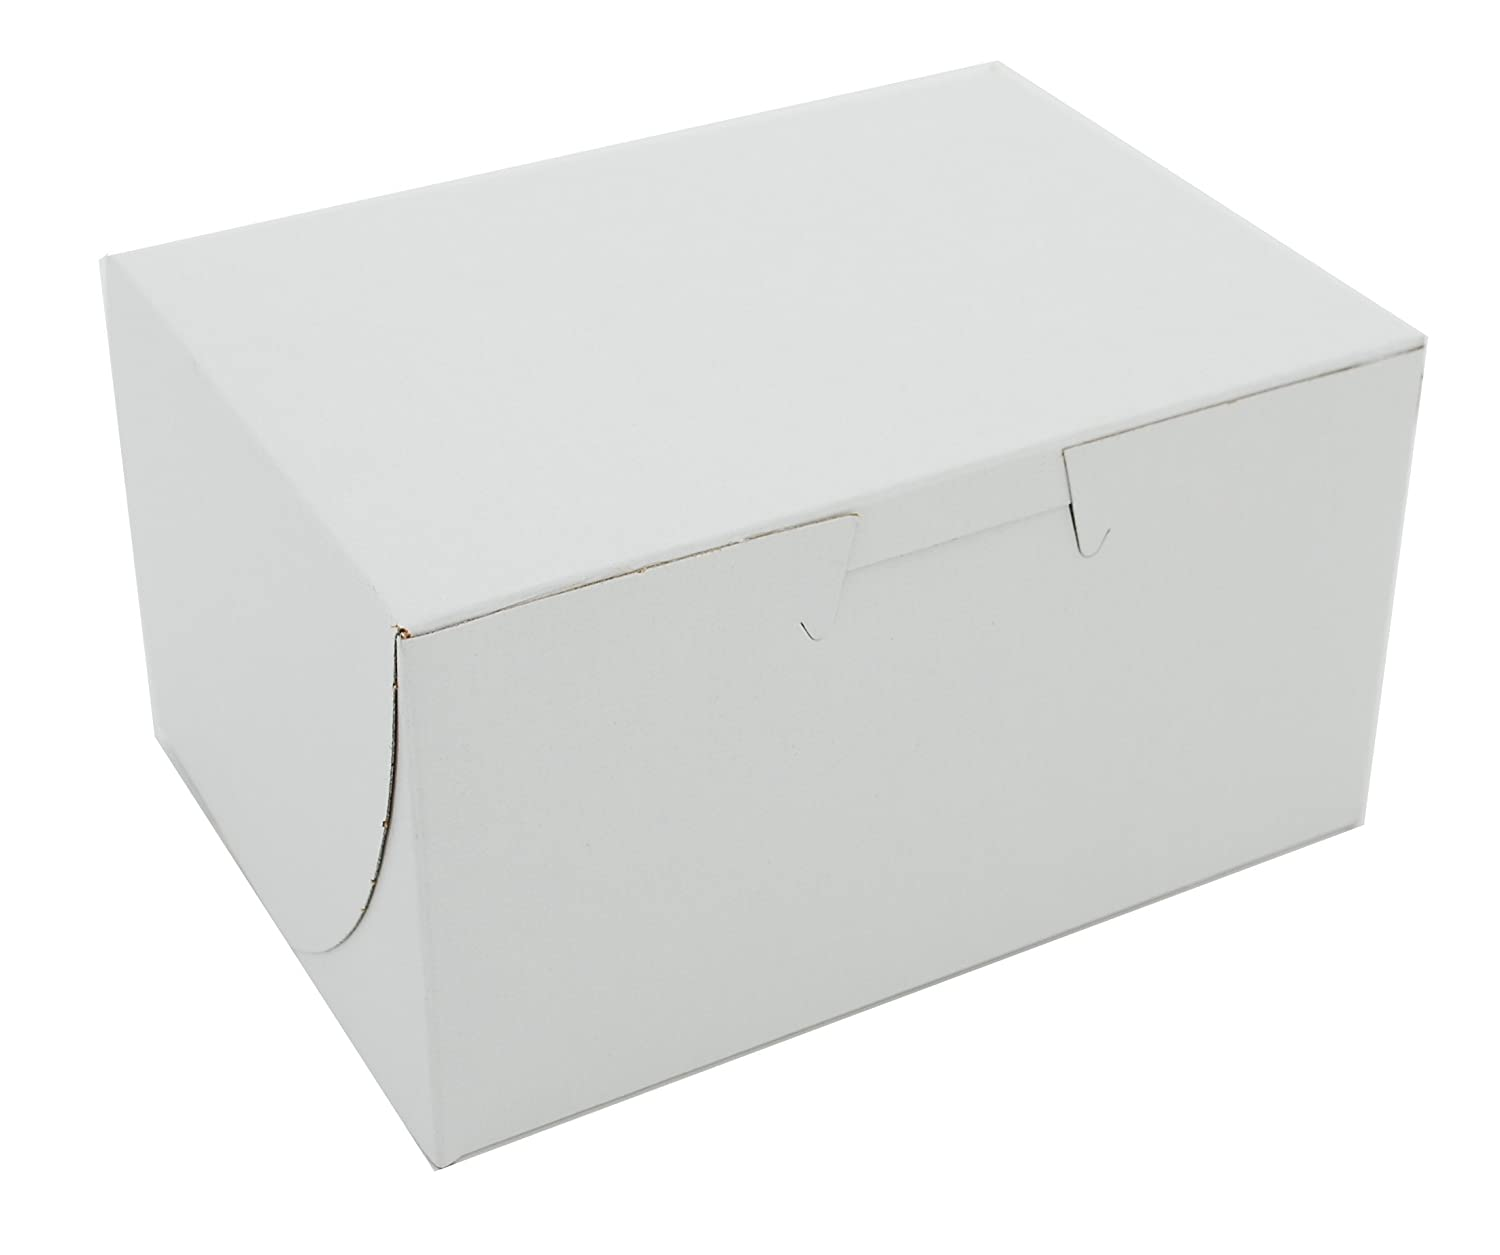 Southern Champion Tray 0900 Premium Clay Coated Kraft Paperboard White Non-Window Lock Corner Bakery Box, 5-1/2